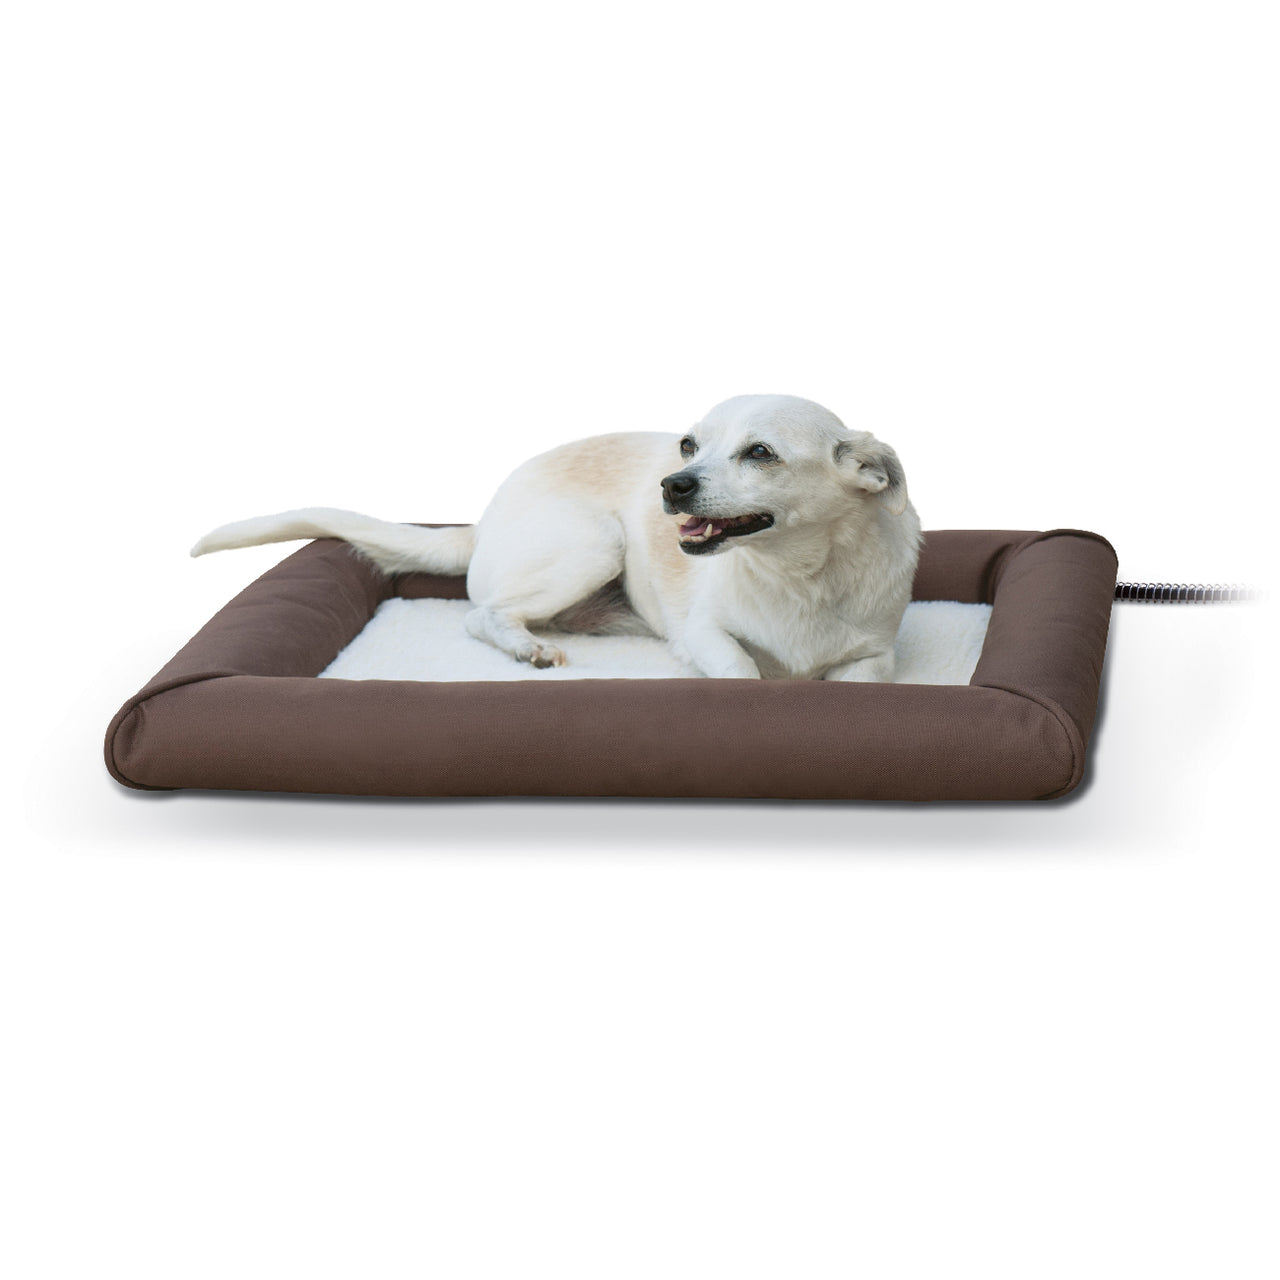 K&h Pet Products Deluxe Lectro-Soft & Cover (Medium-60W) - Deluxe Lectro-Soft Outdoor Heated Bed Tan K&h Pet Products - Canada